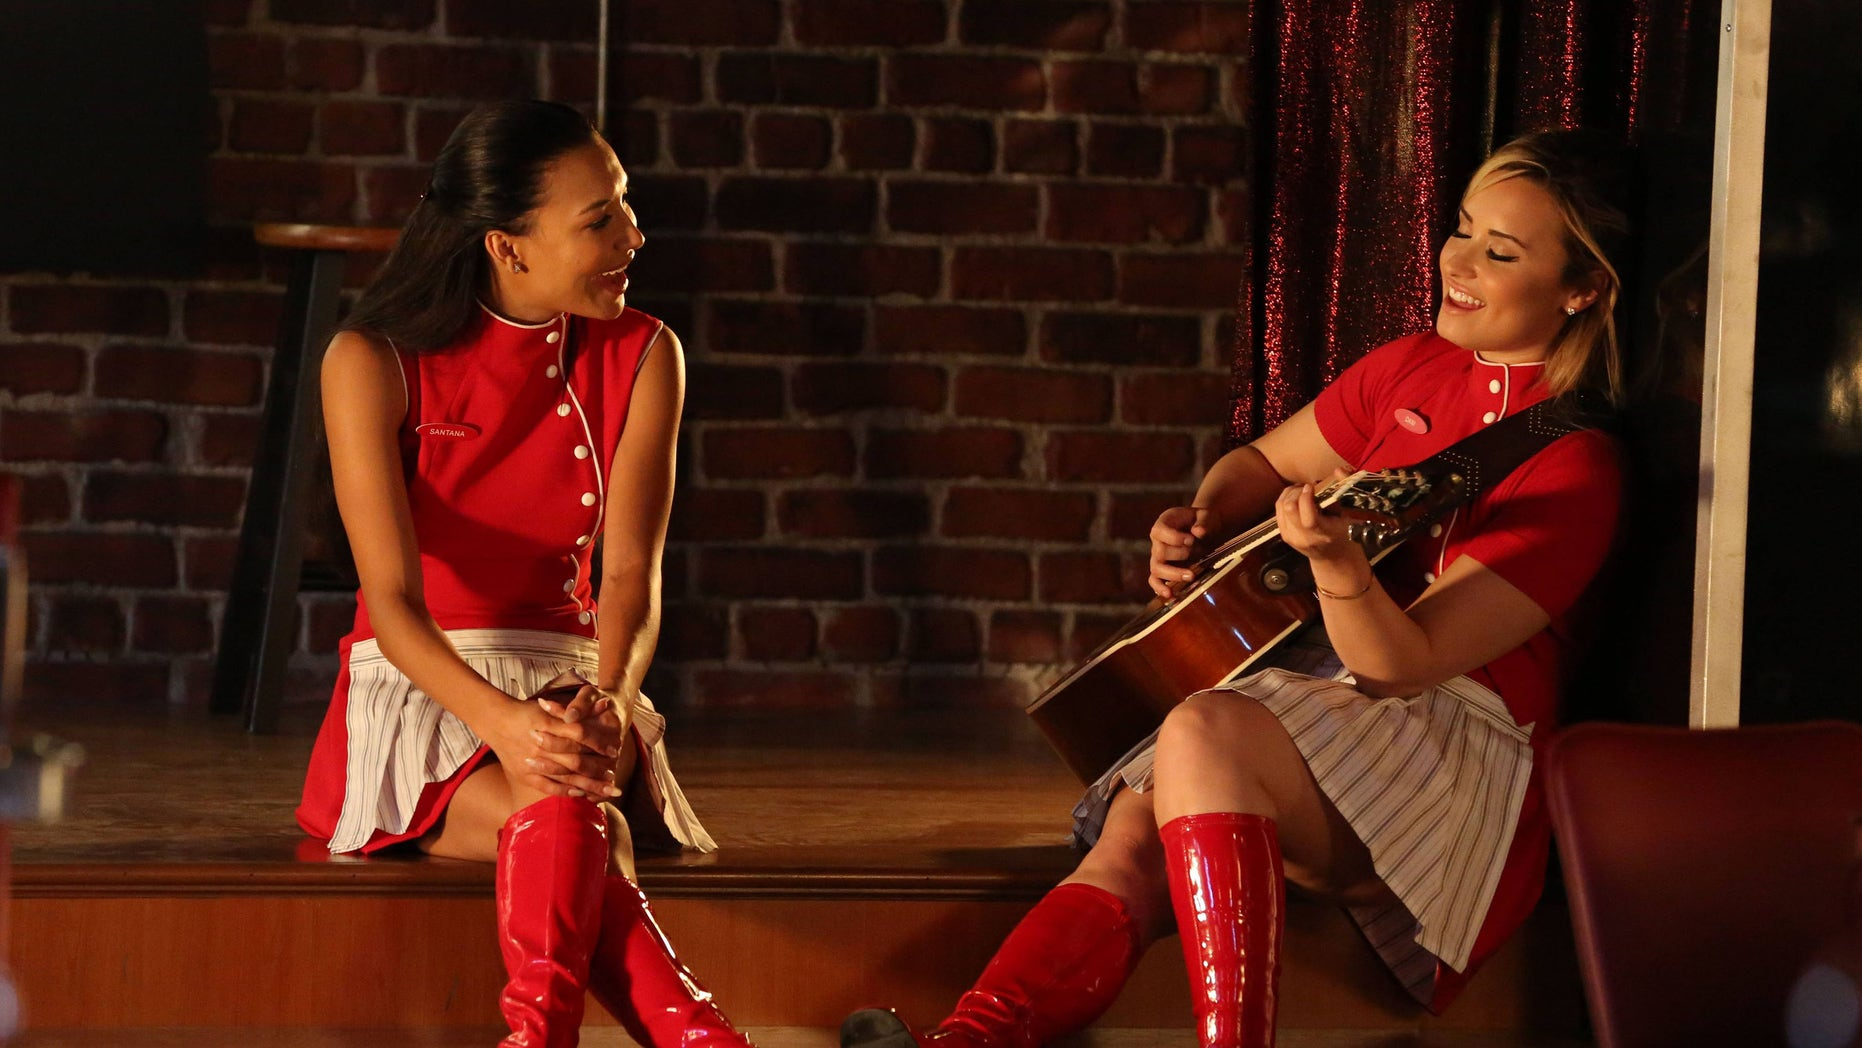 Santana (Naya Rivera) and Dani (guest star Demi Lovato) perform in an episode of 'Lee' That Aired Thursday, Oct. 3, 2013.